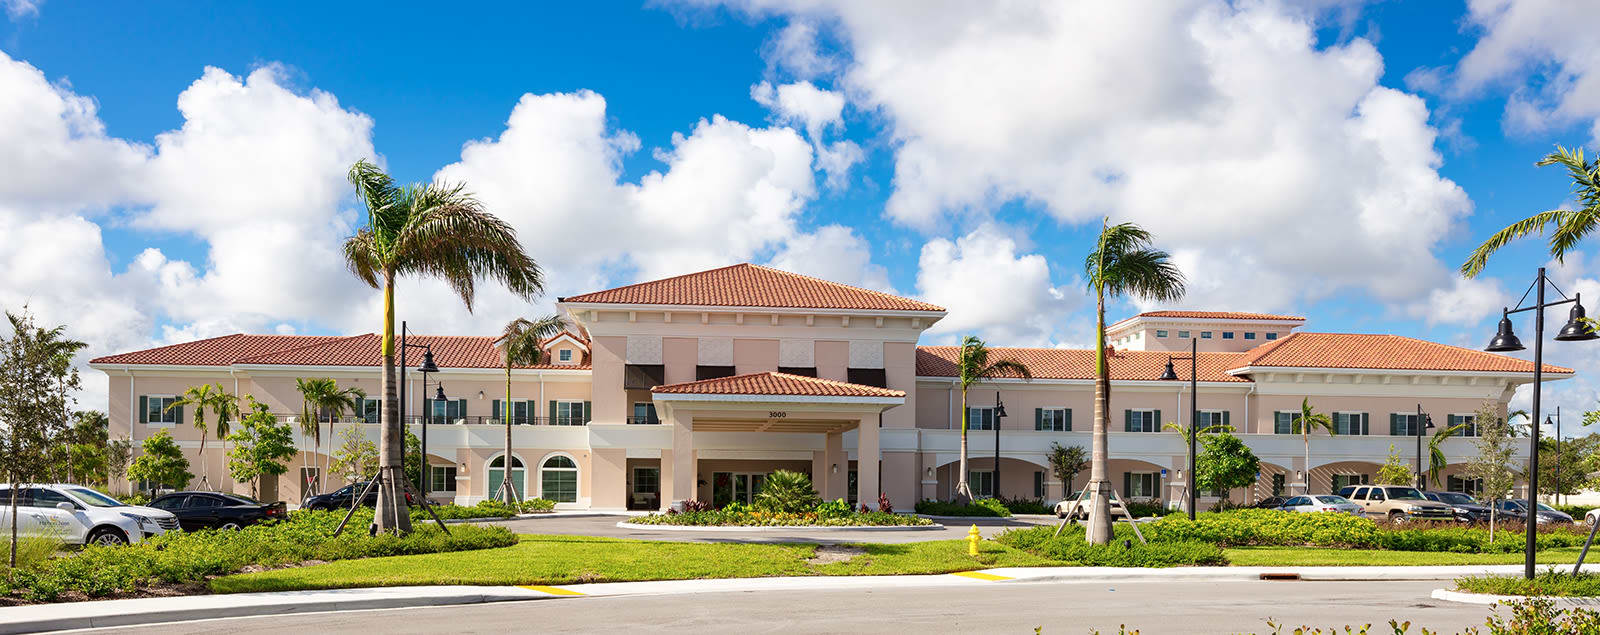 Senior Living mailing list available in Palm Beach Gardens